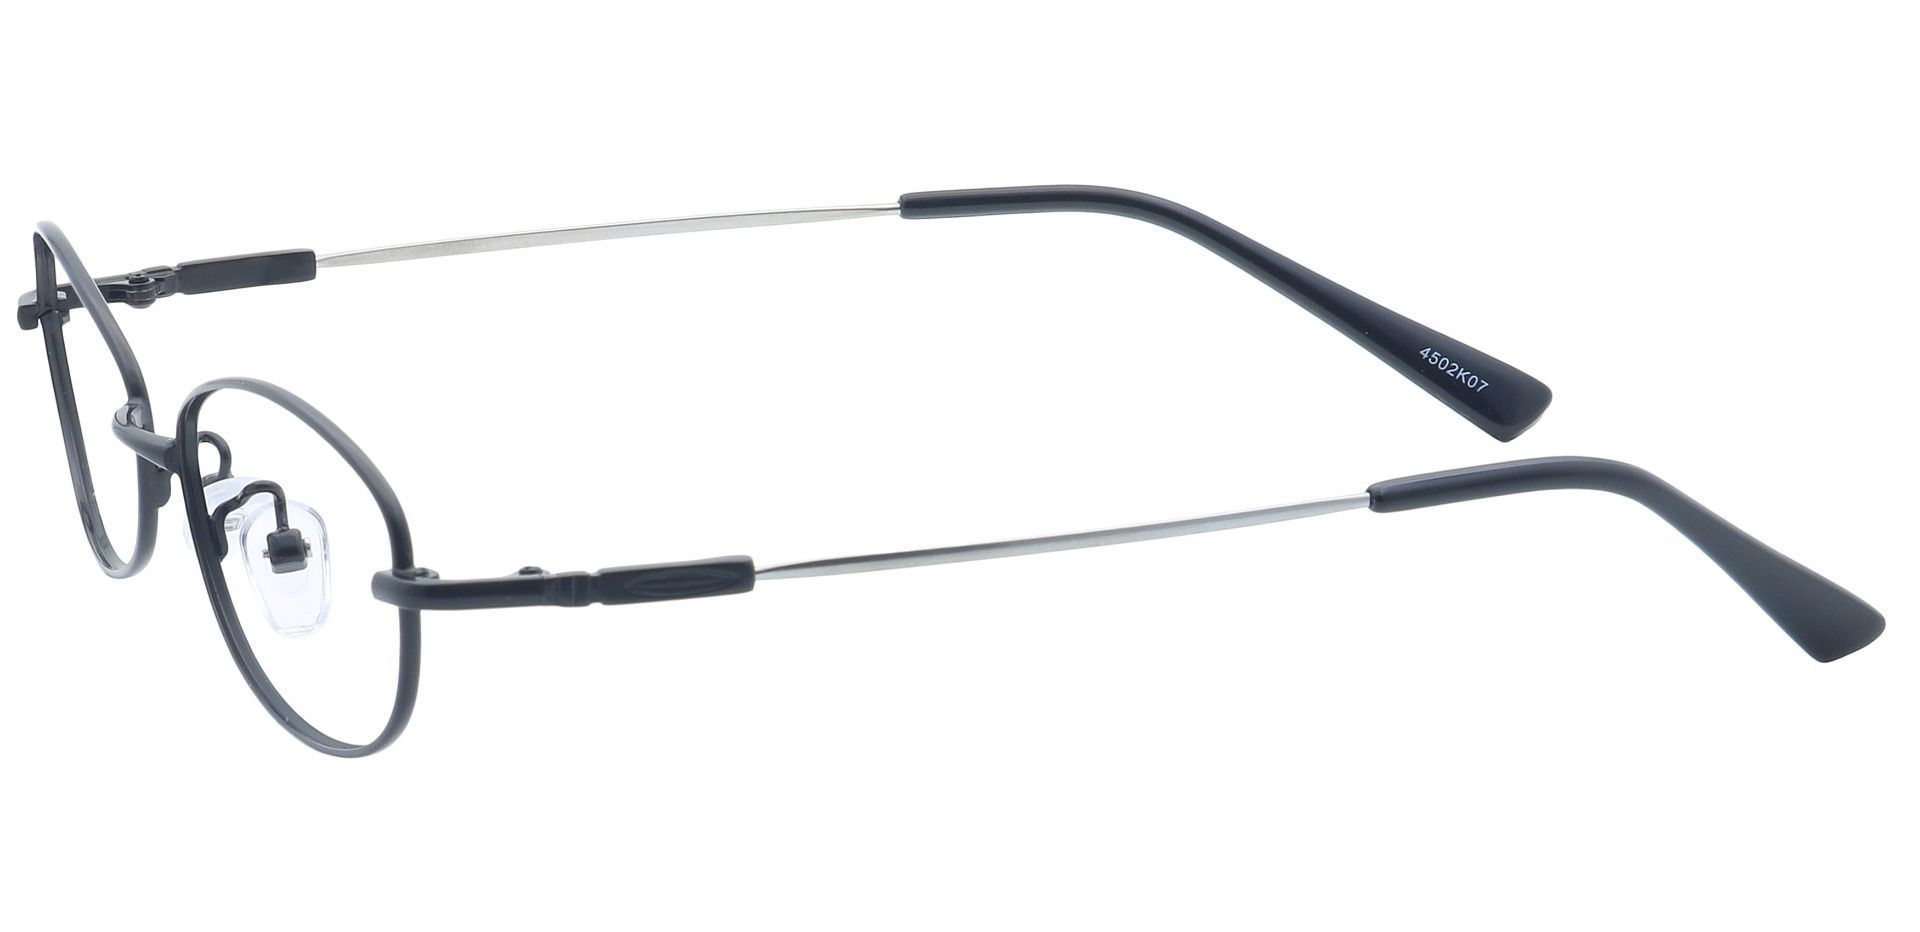 Coronation Oval Reading Glasses - Black